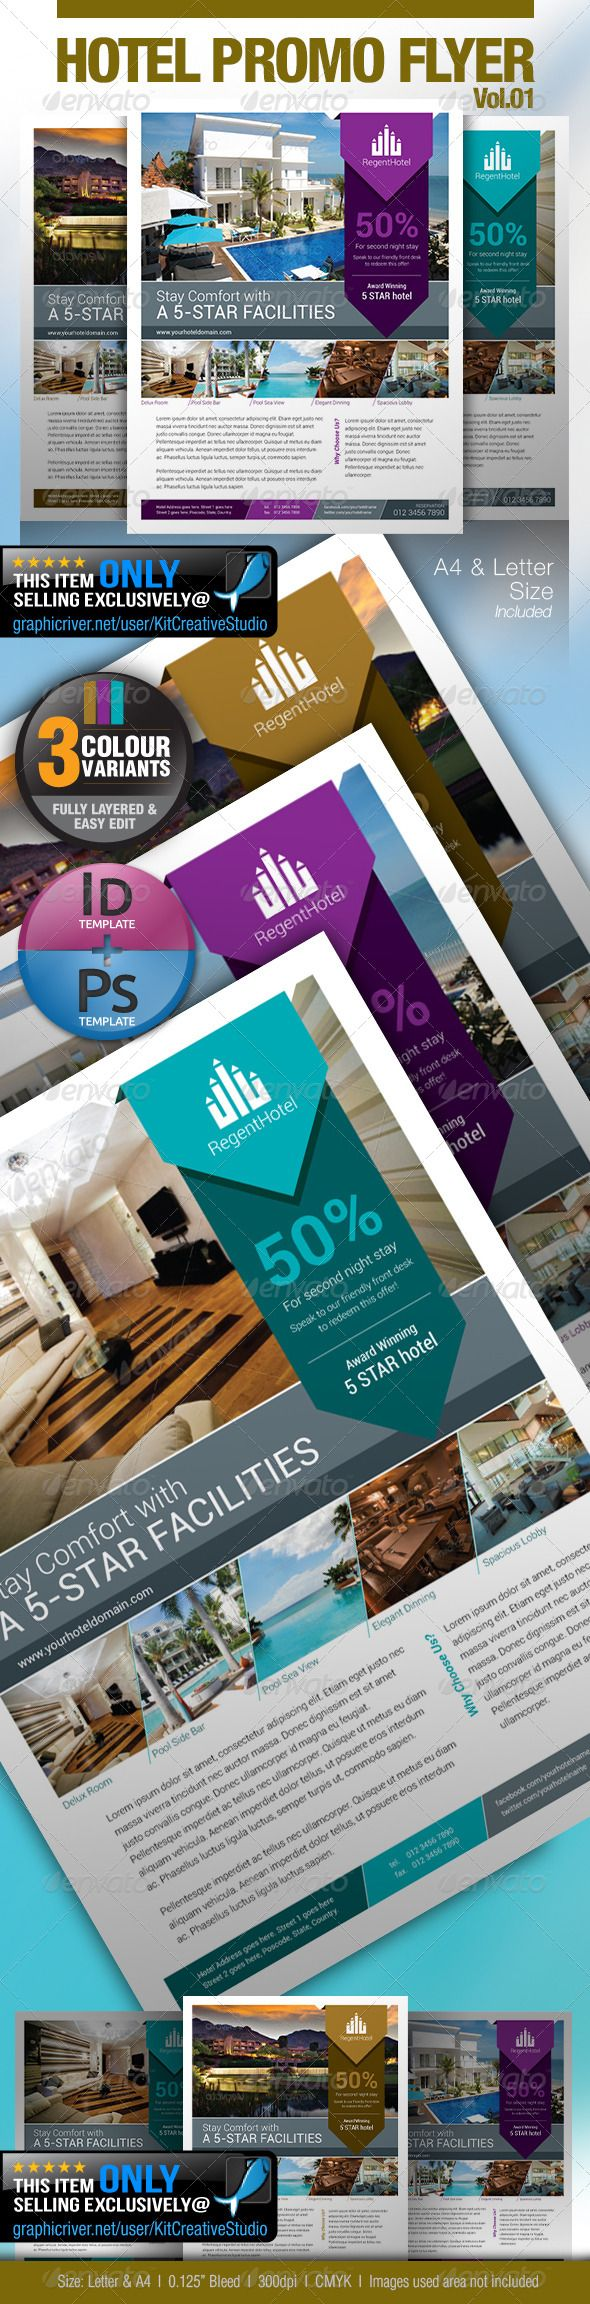 Hotel Promo Flyer Vol.01 — Photoshop PSD #a4 #bellboy • Available here → https://graphicriver.net/item/hotel-promo-flyer-vol01/5335953?ref=pxcr